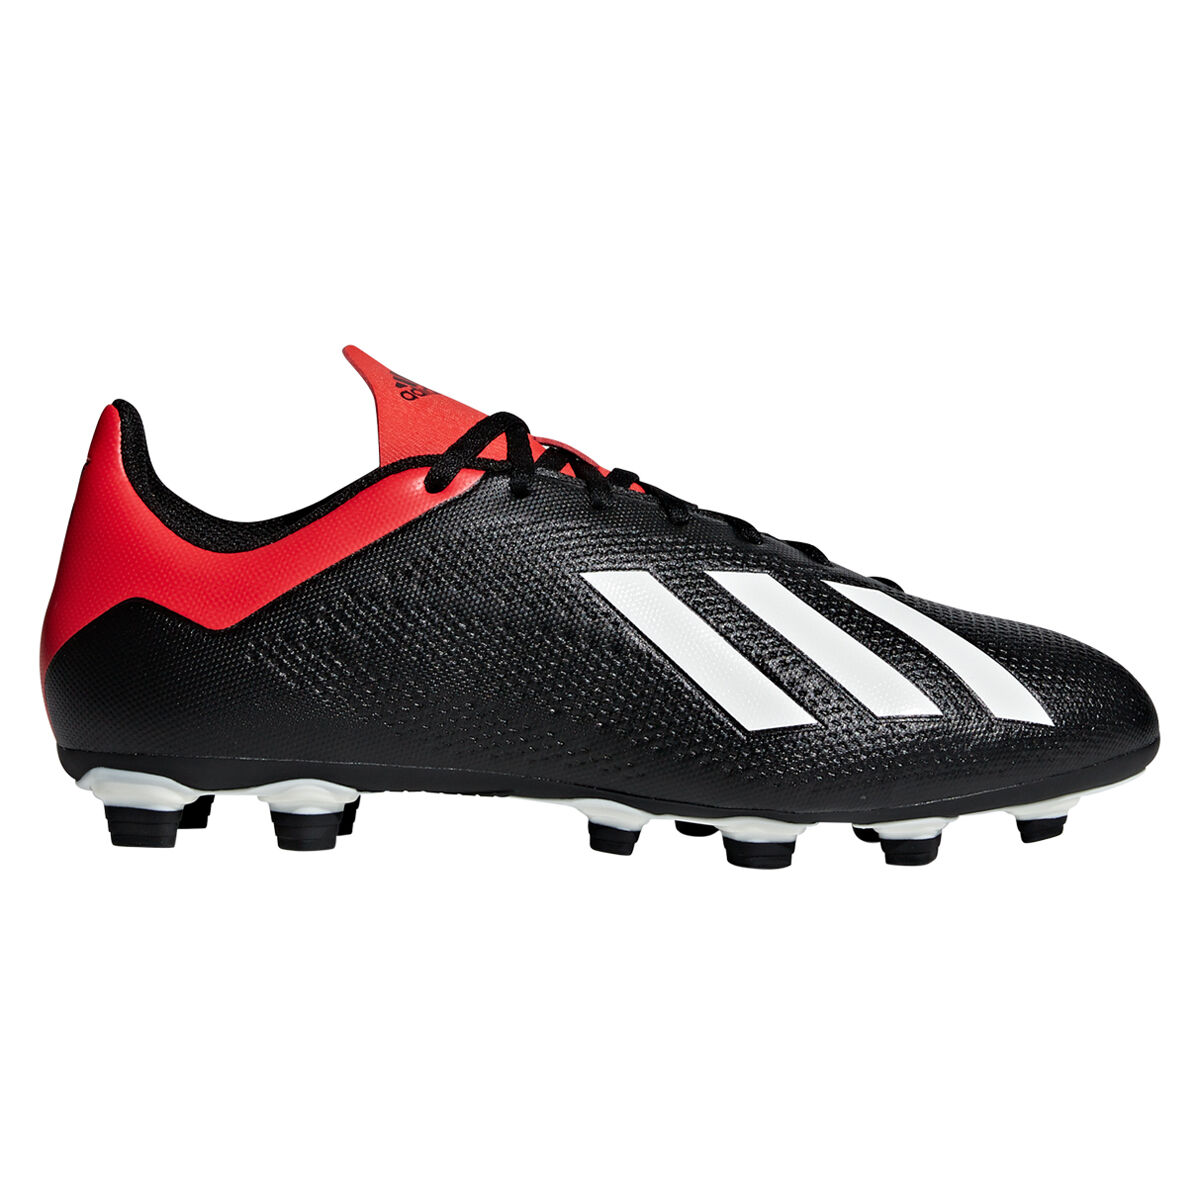 new product 335db 743e0 ... soccer cleats 101 477fd 5f94c  france adidas x 18.4 mens football boots  black white us 7 black white 34dc1 2d8d9